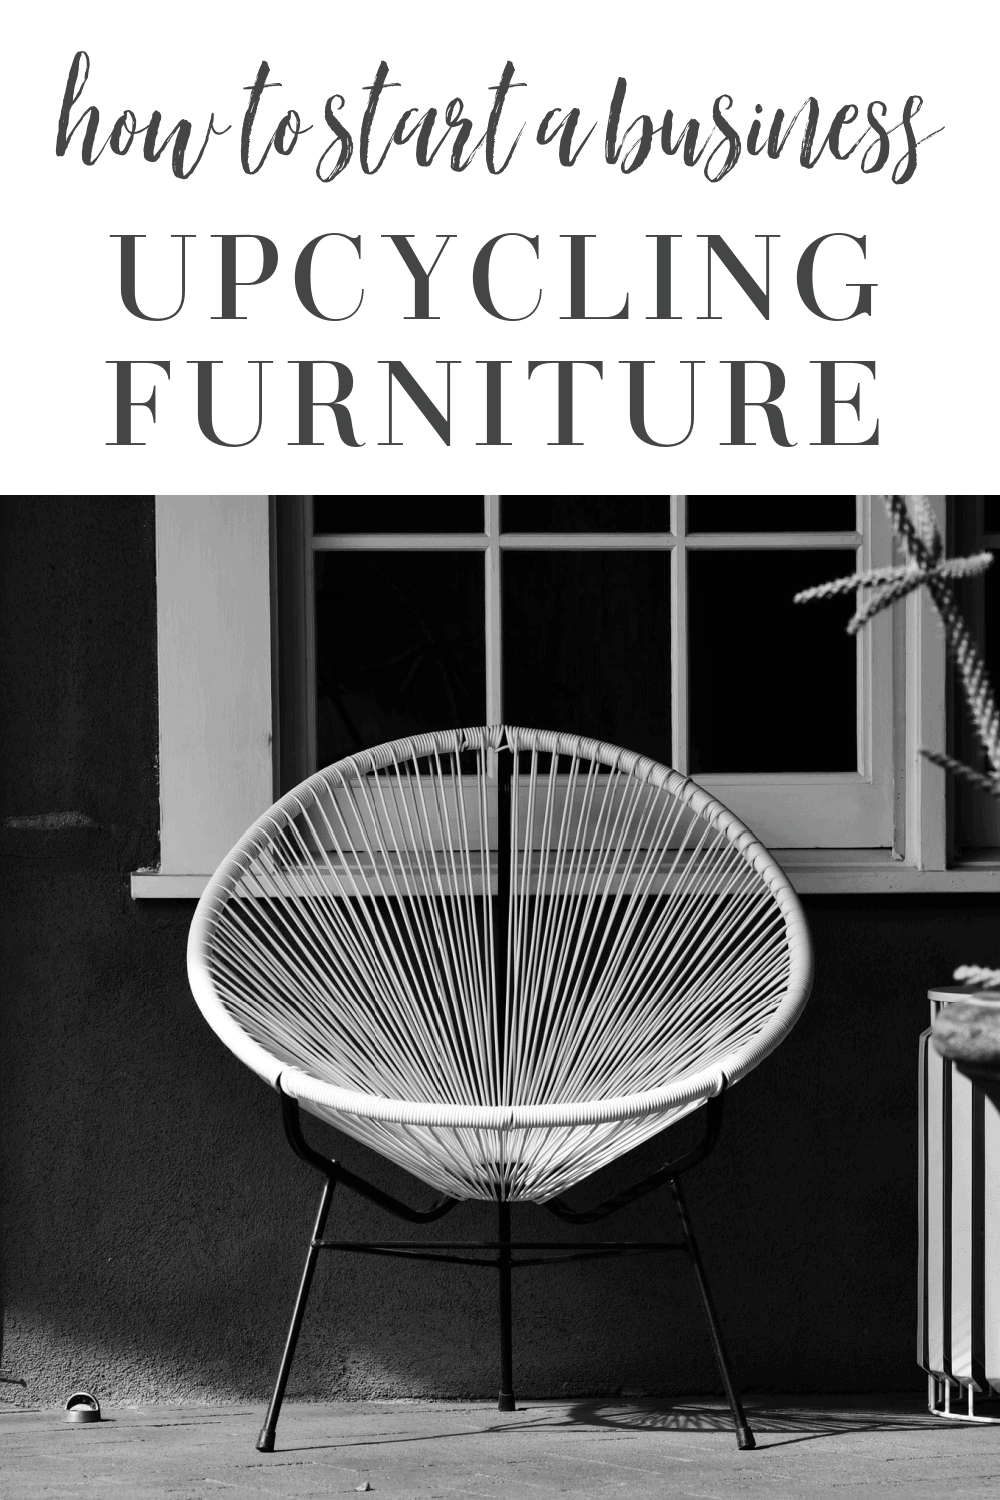 How To Start a Business Upcycling Furniture